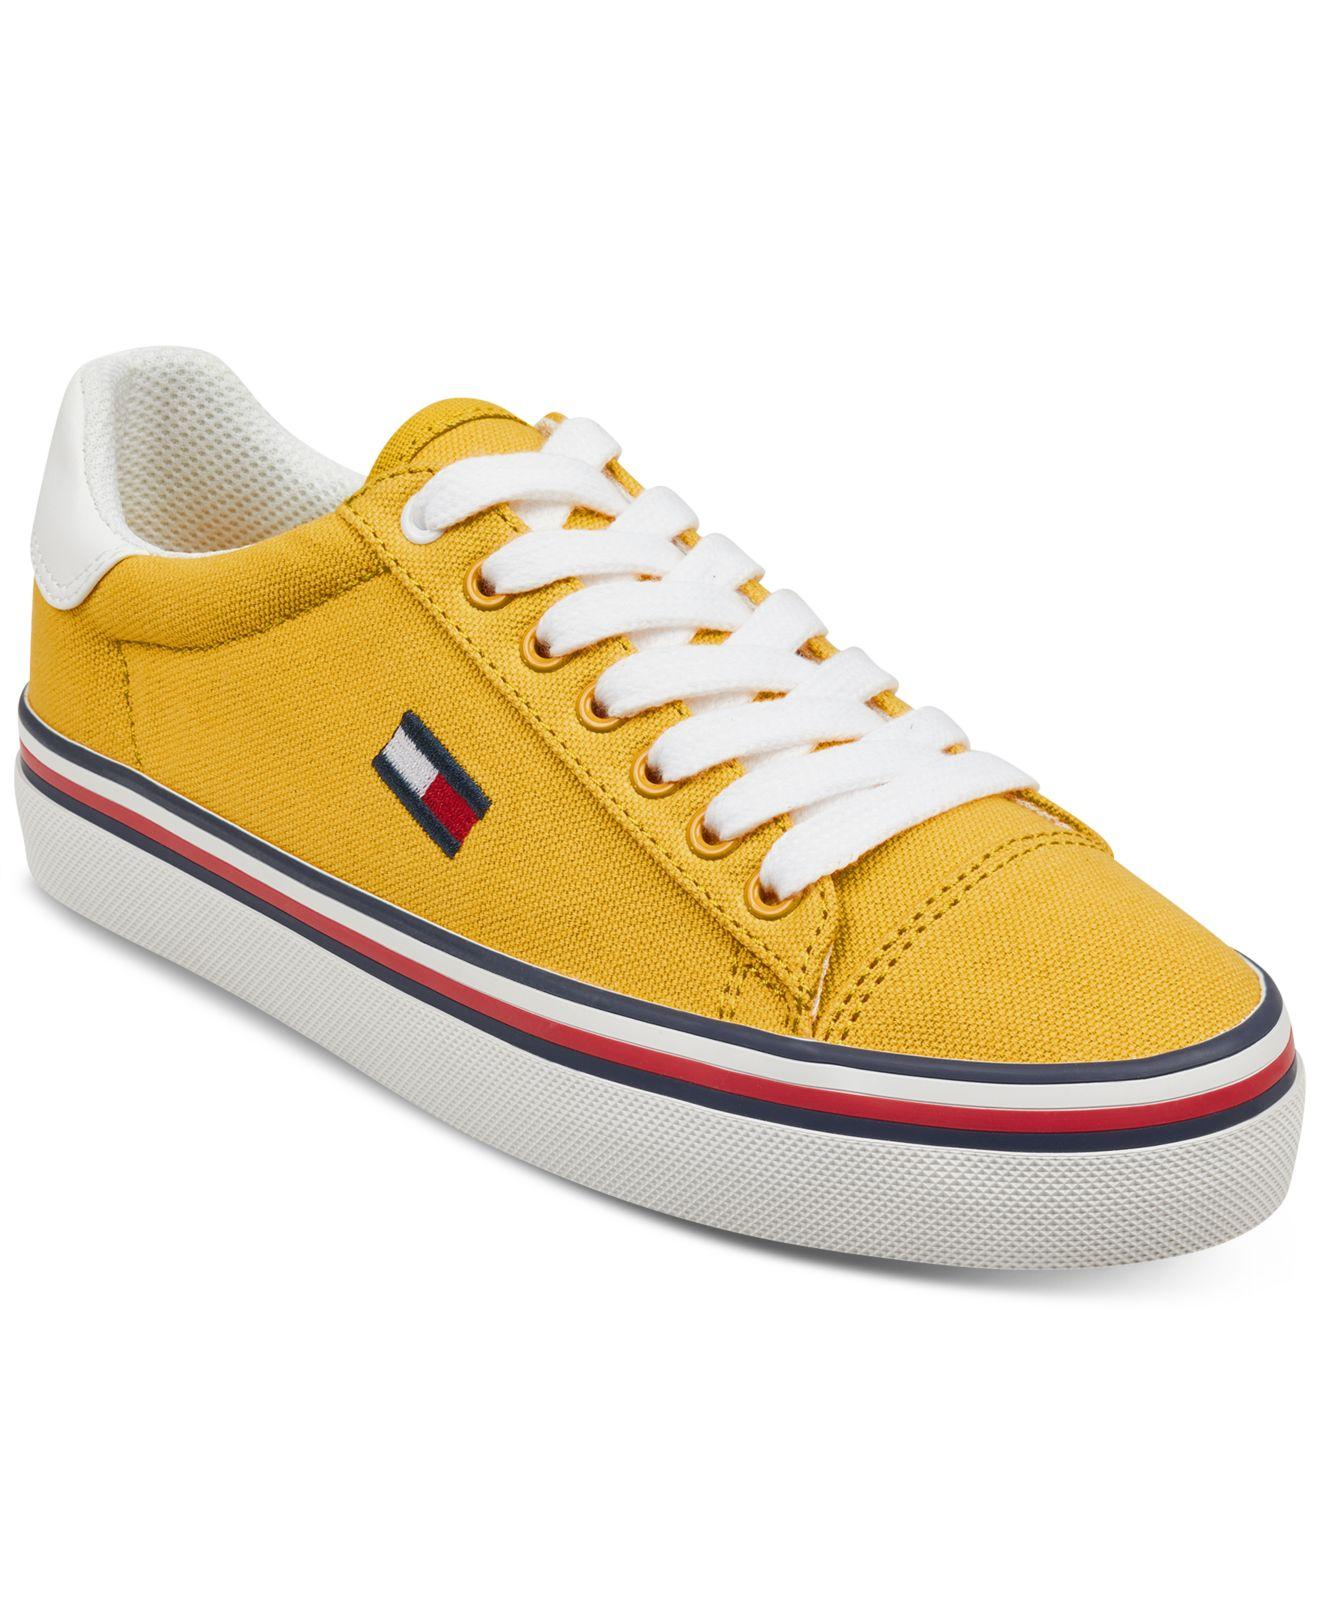 ae4f6a5a0f0a Lyst - Tommy Hilfiger Fressian Sneakers in Yellow